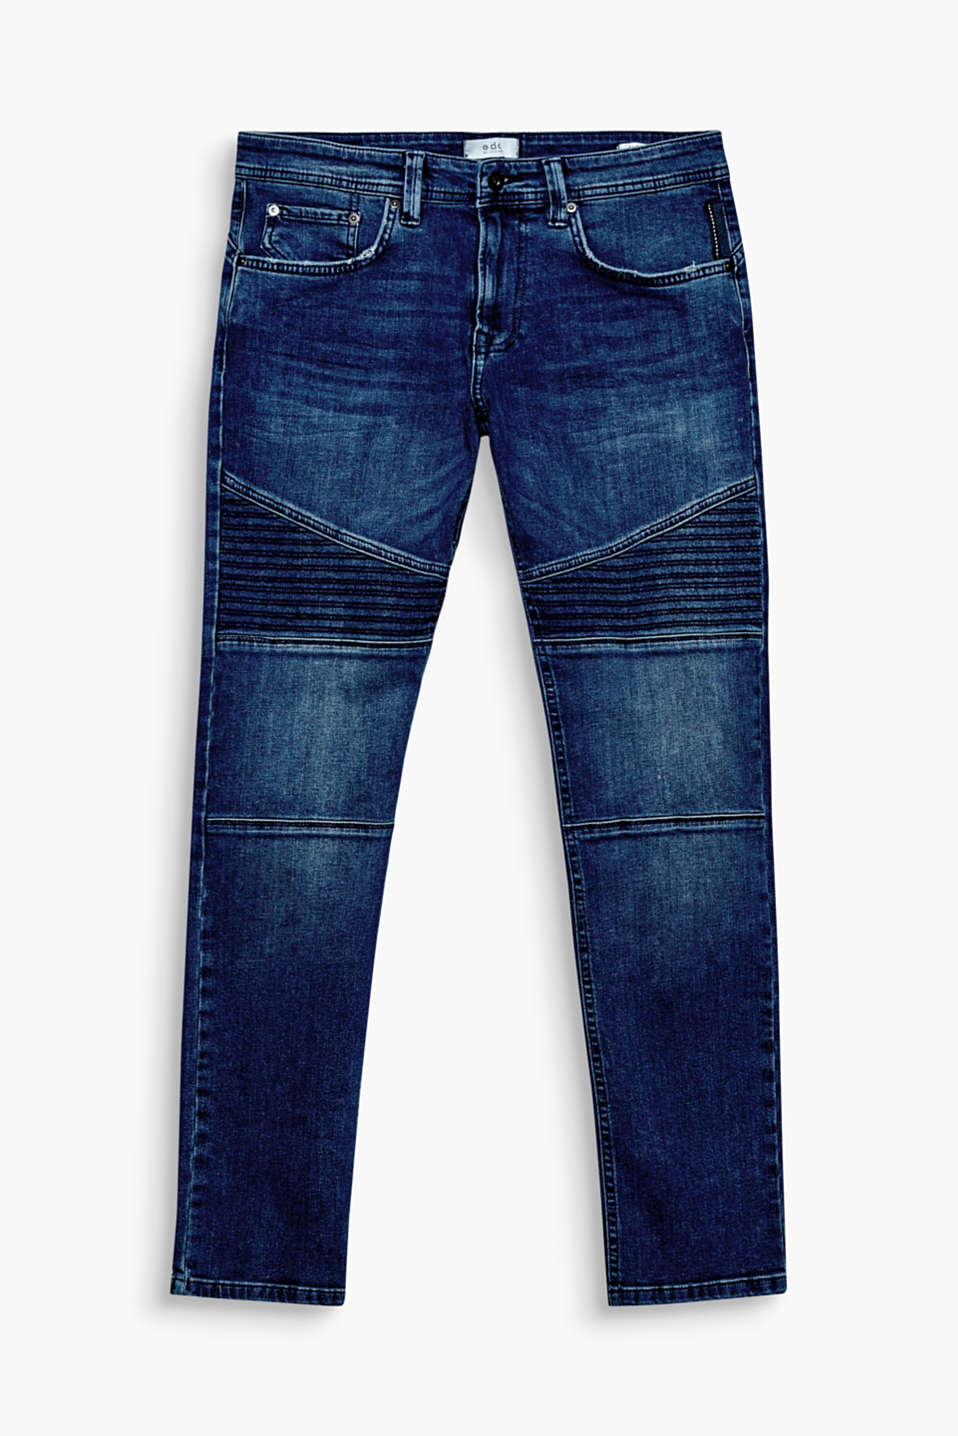 Cool biker details, decorative stitching and authentic garment-washed effects make these jeans an urban favourite.